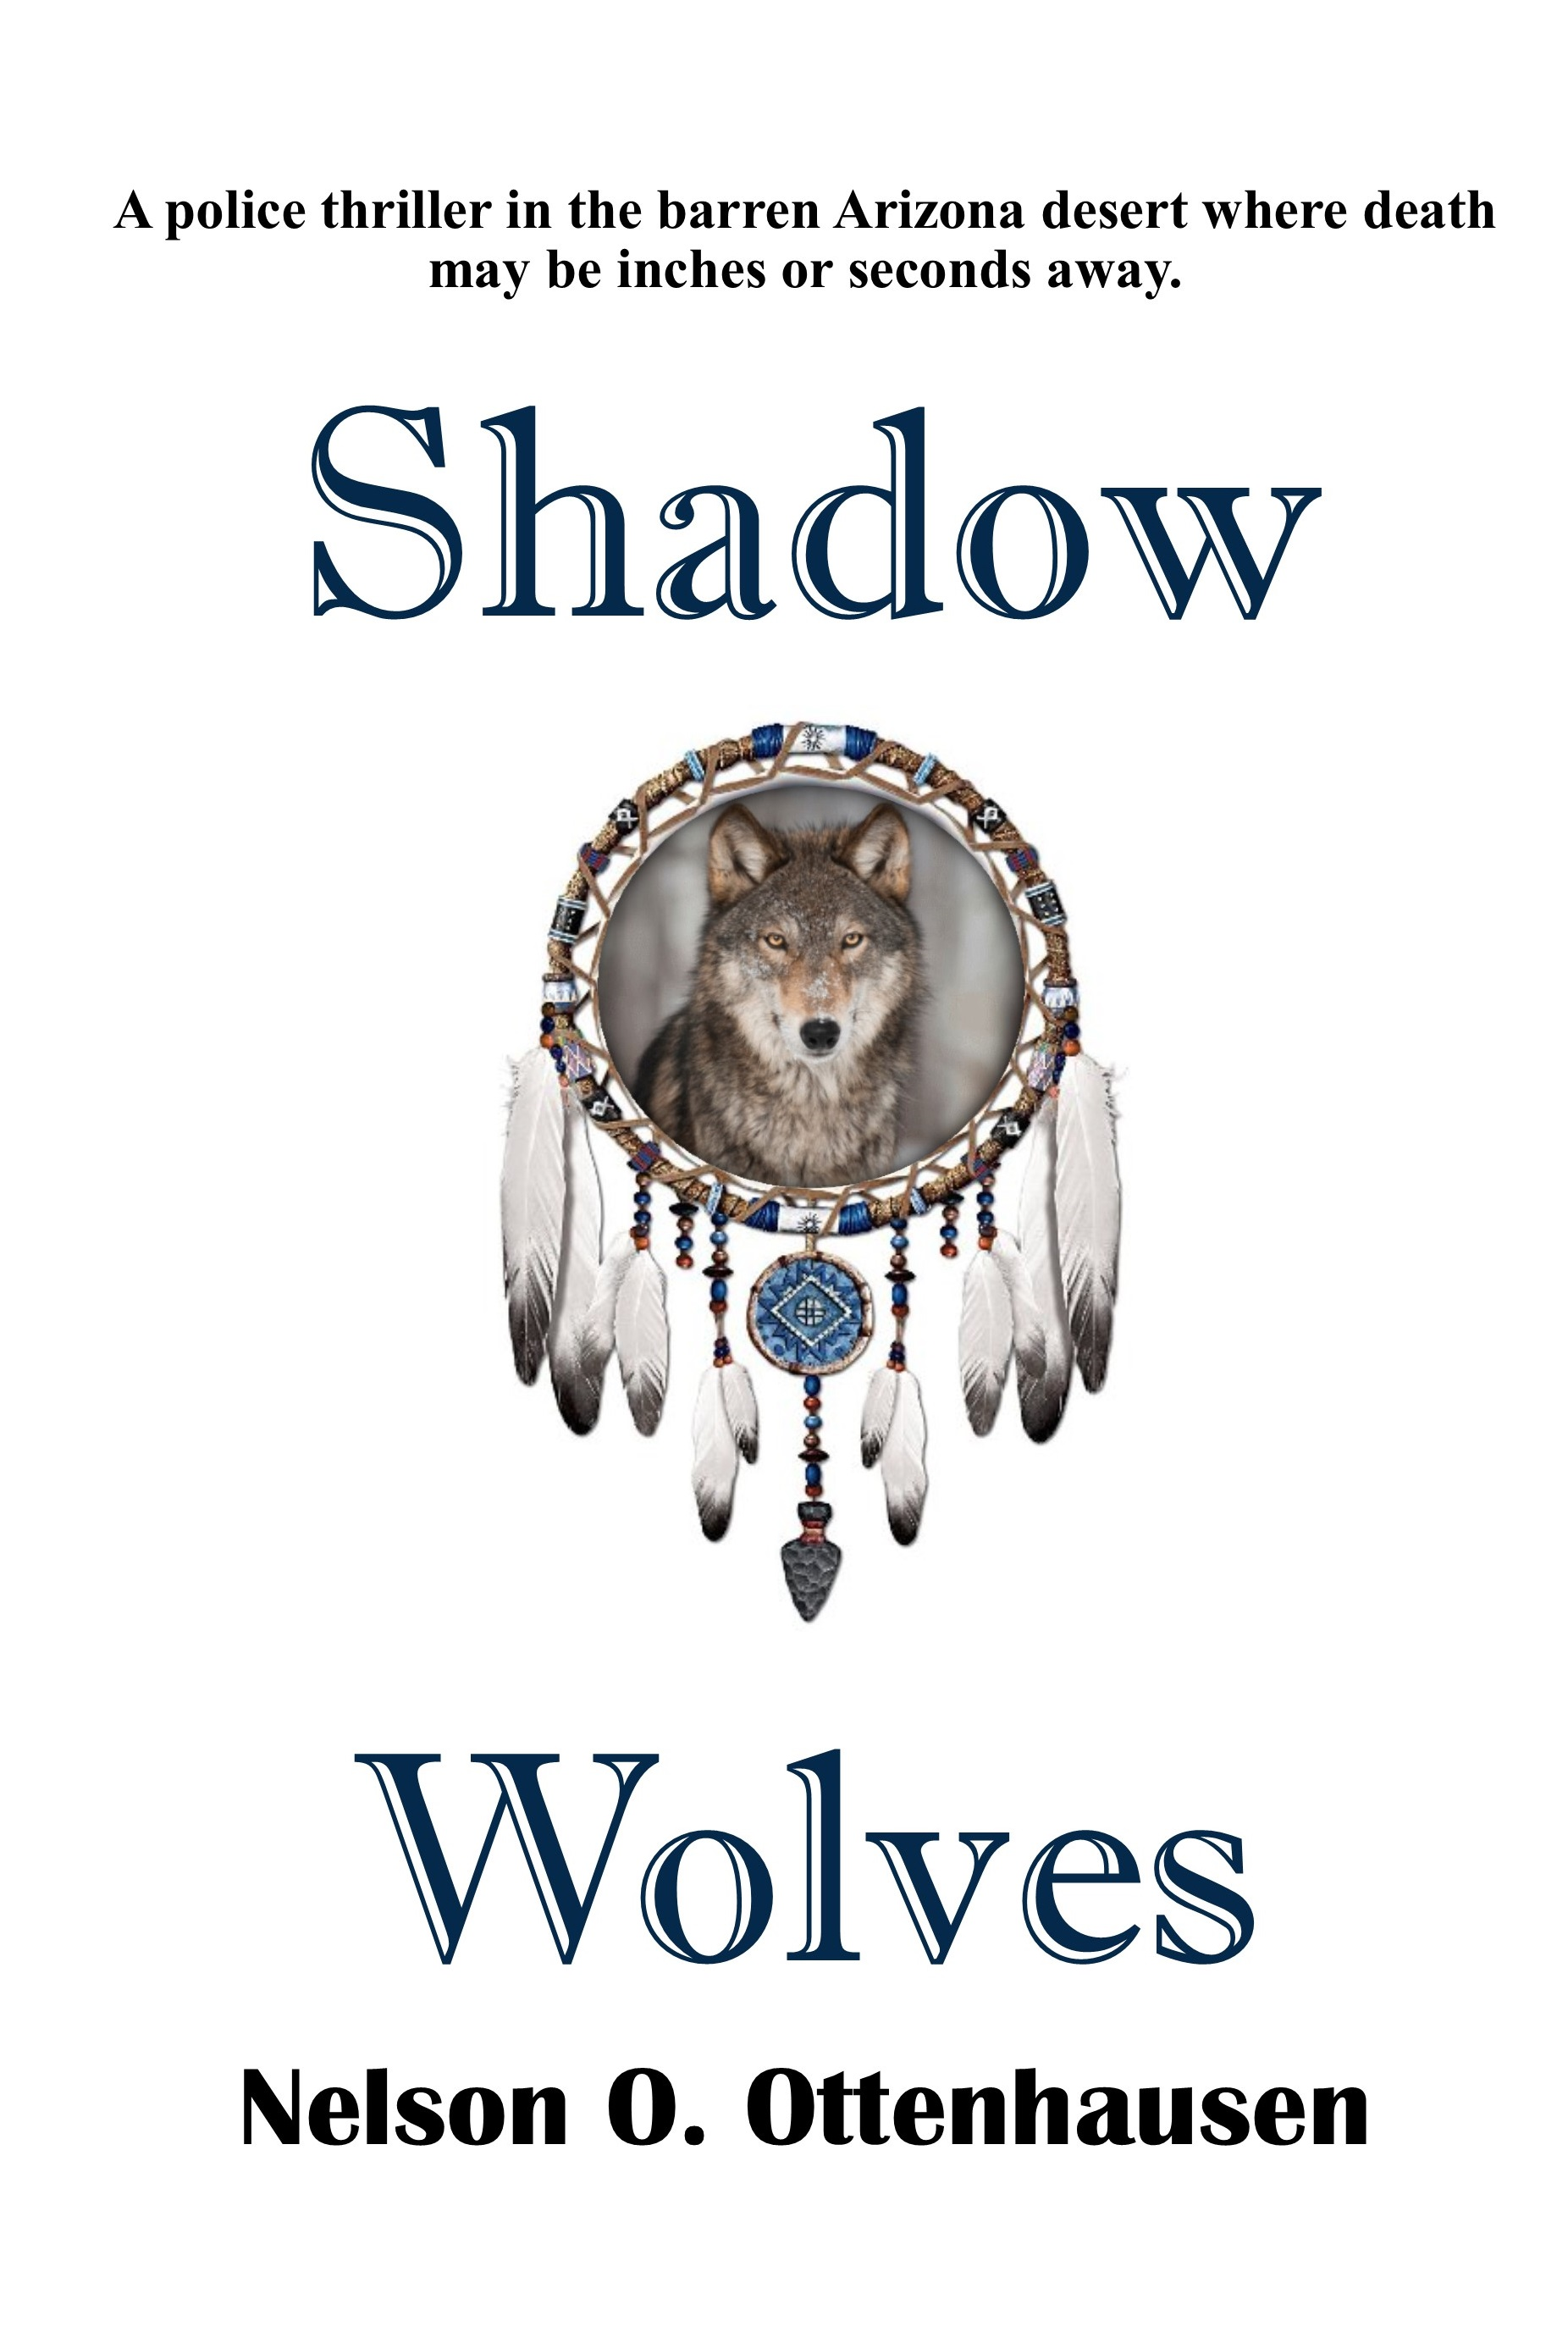 Thumbnailcovers/ShadowWolvesFrontCover.jpg